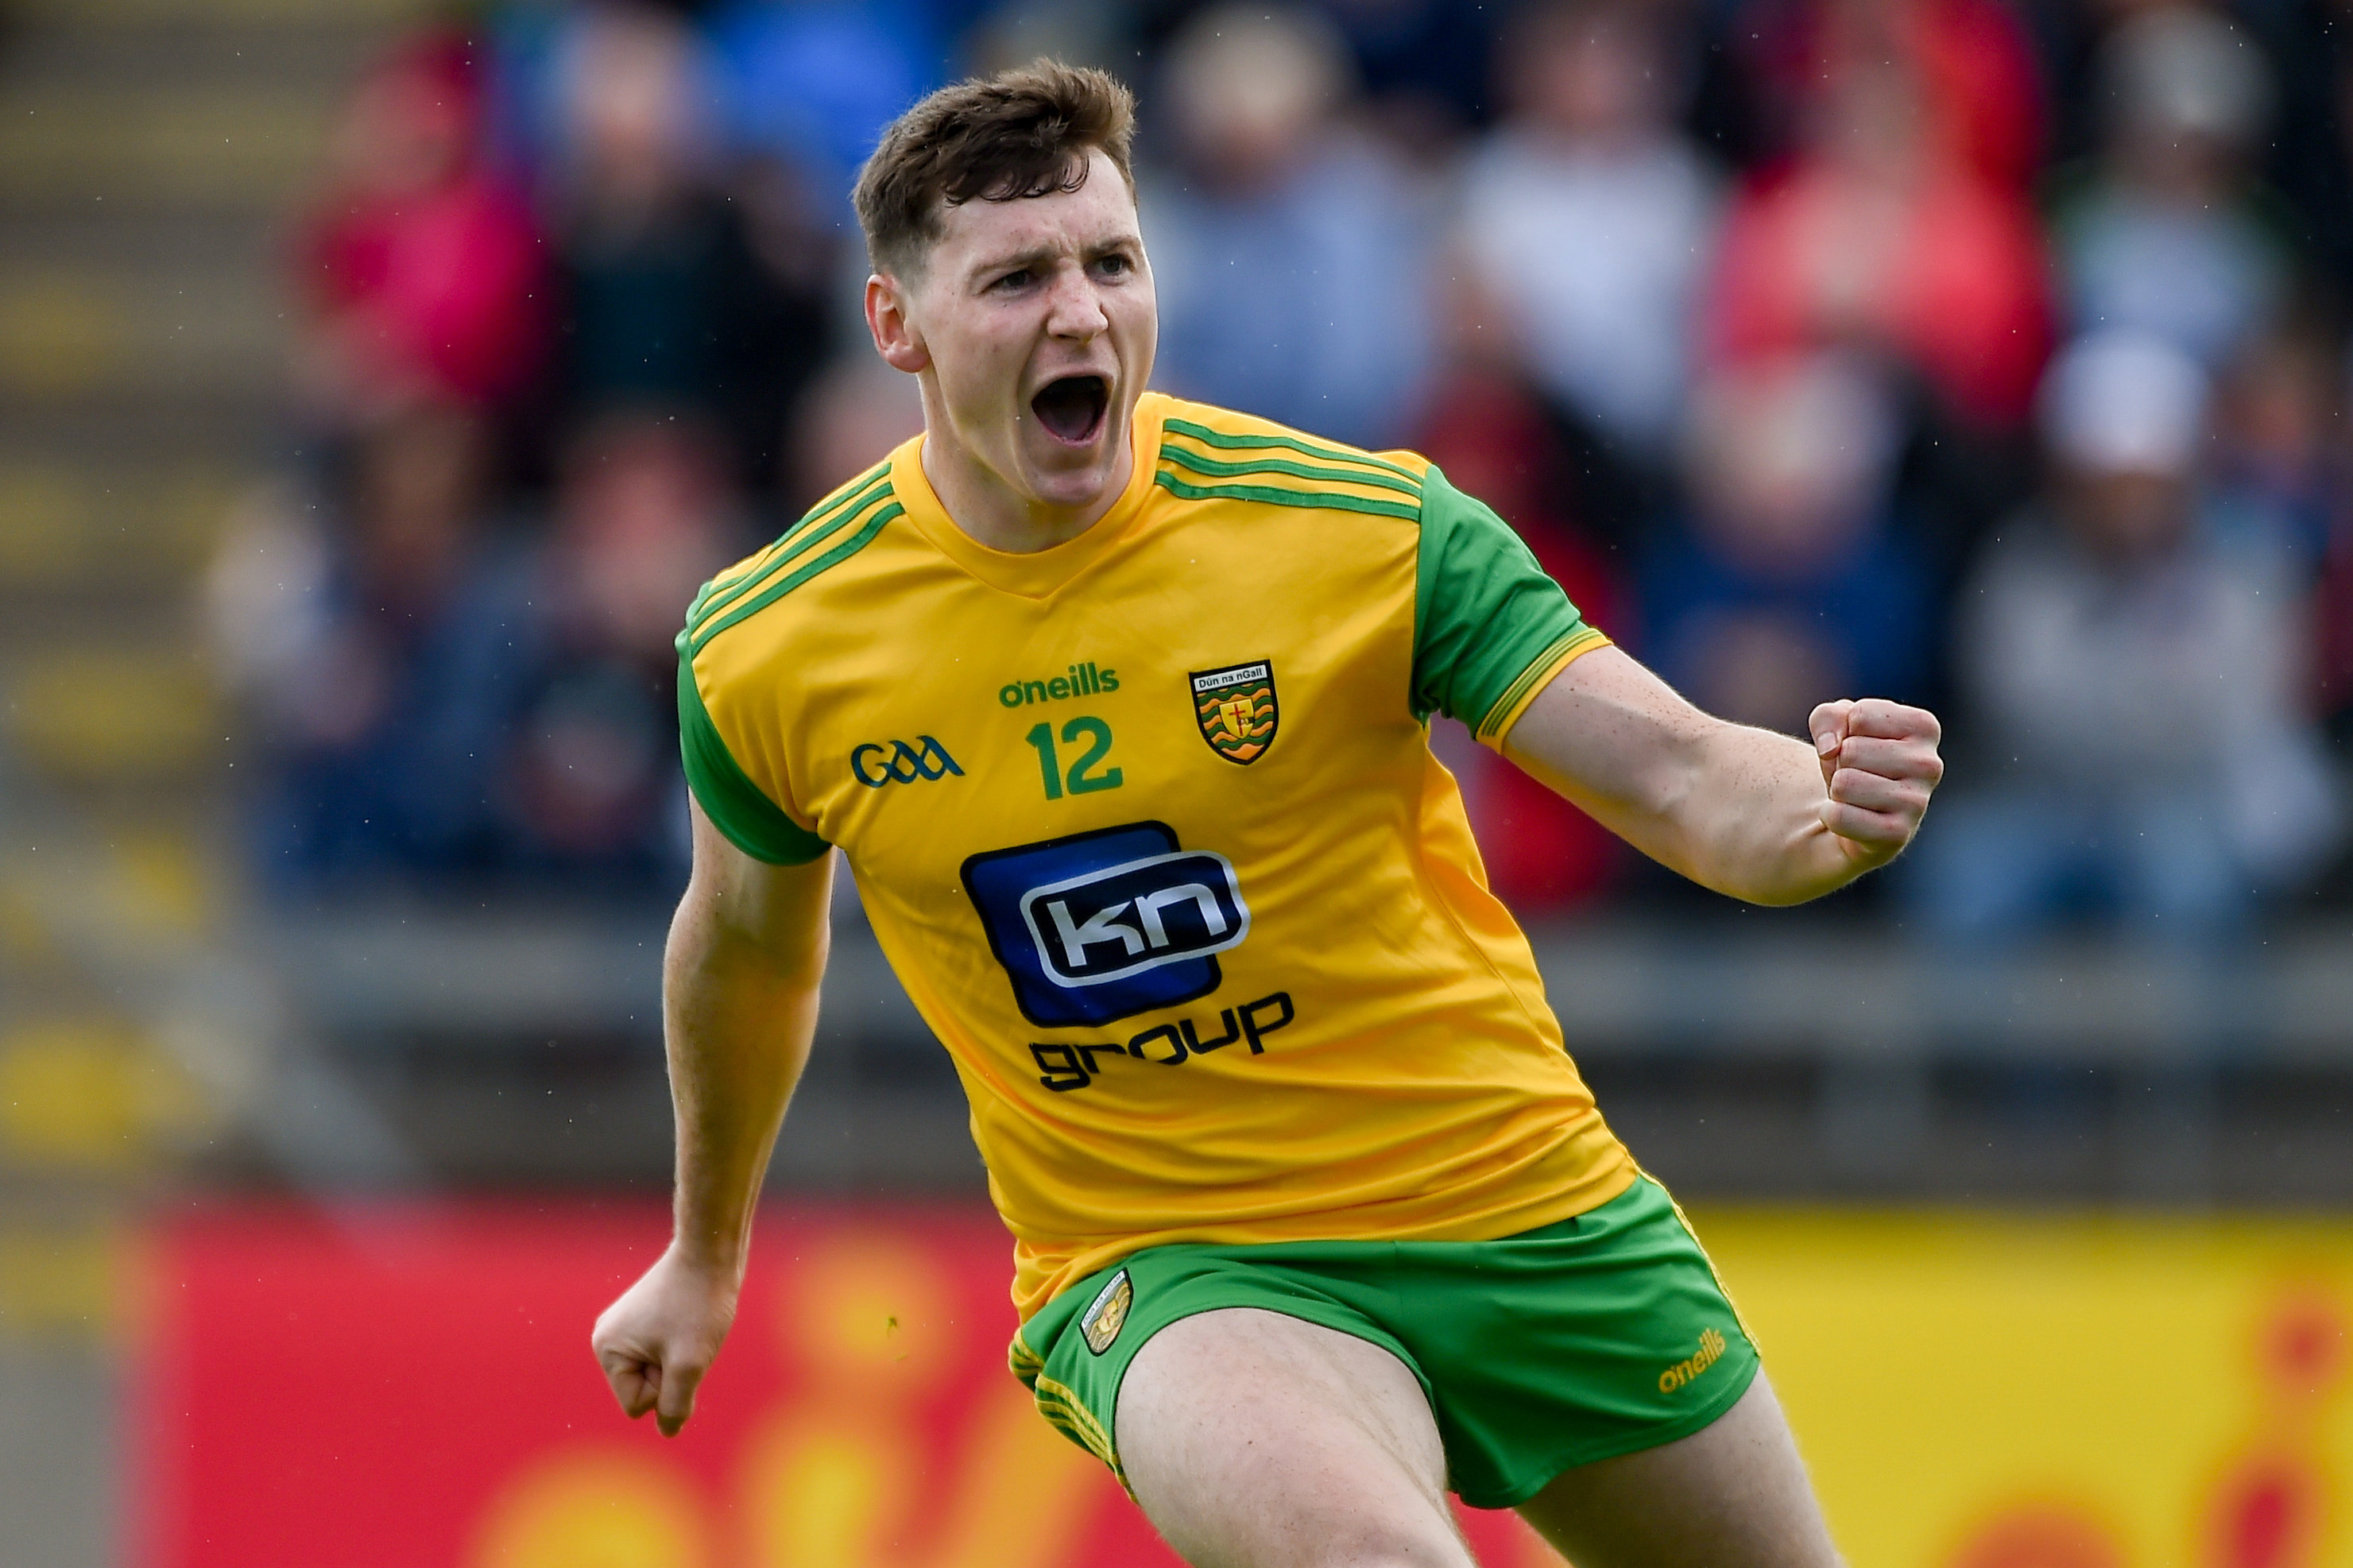 Donegal advance to the Ulster final with victory over Tyrone